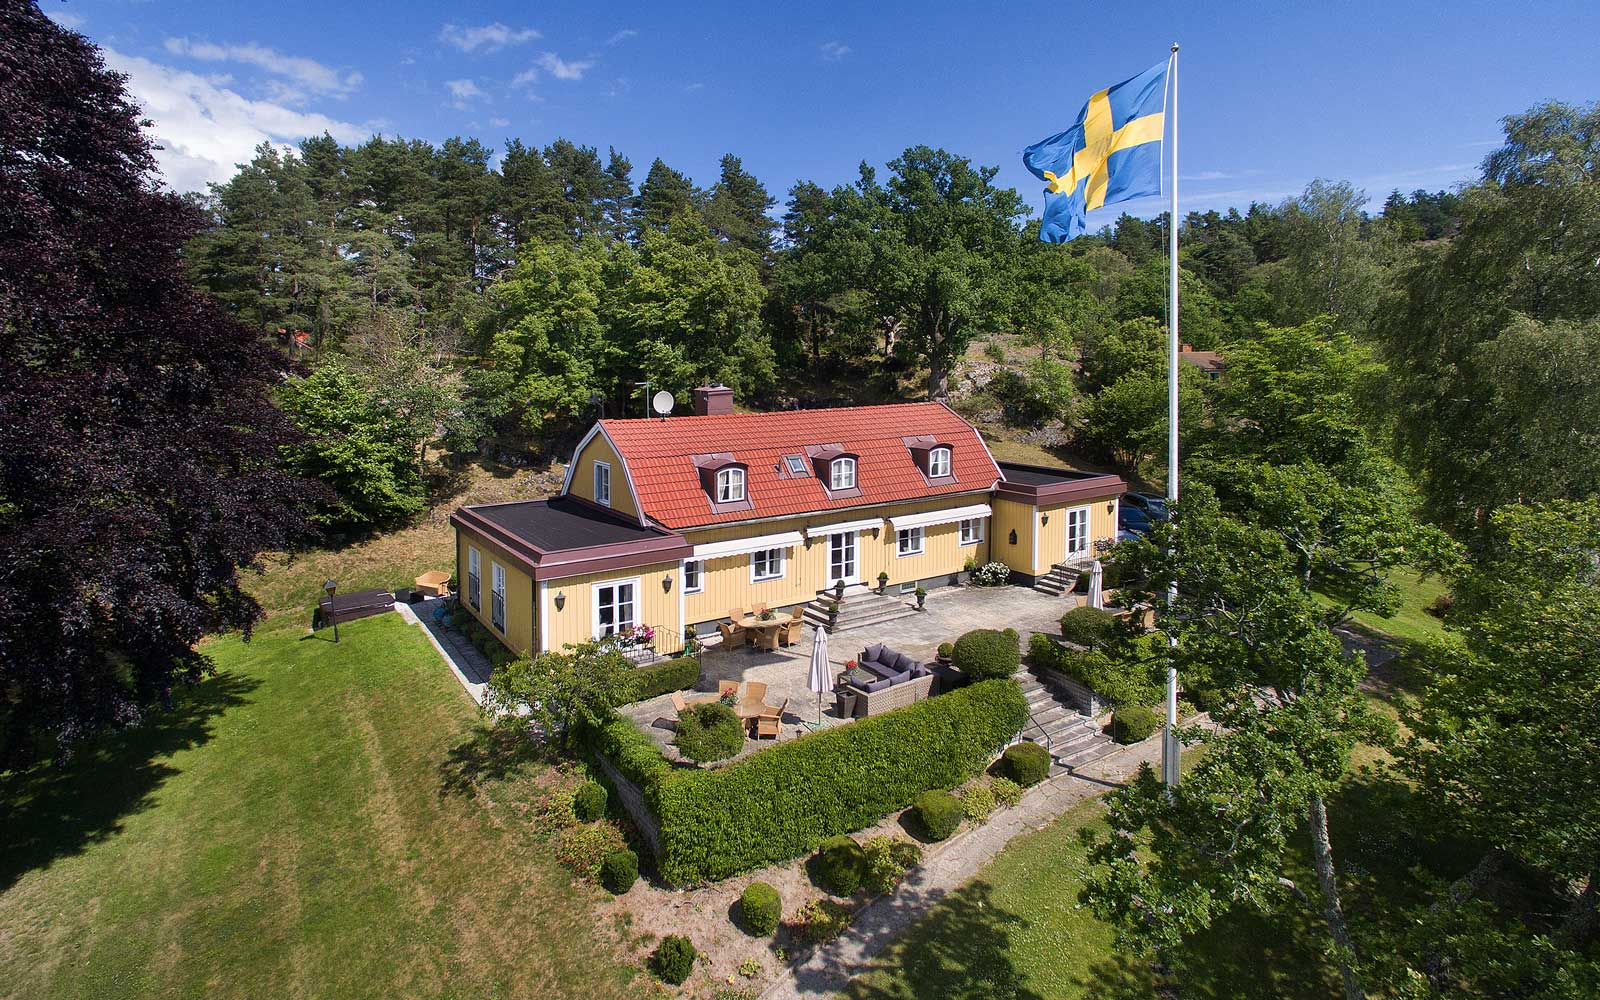 Greta Garbo's summer vacation home in Stockholm